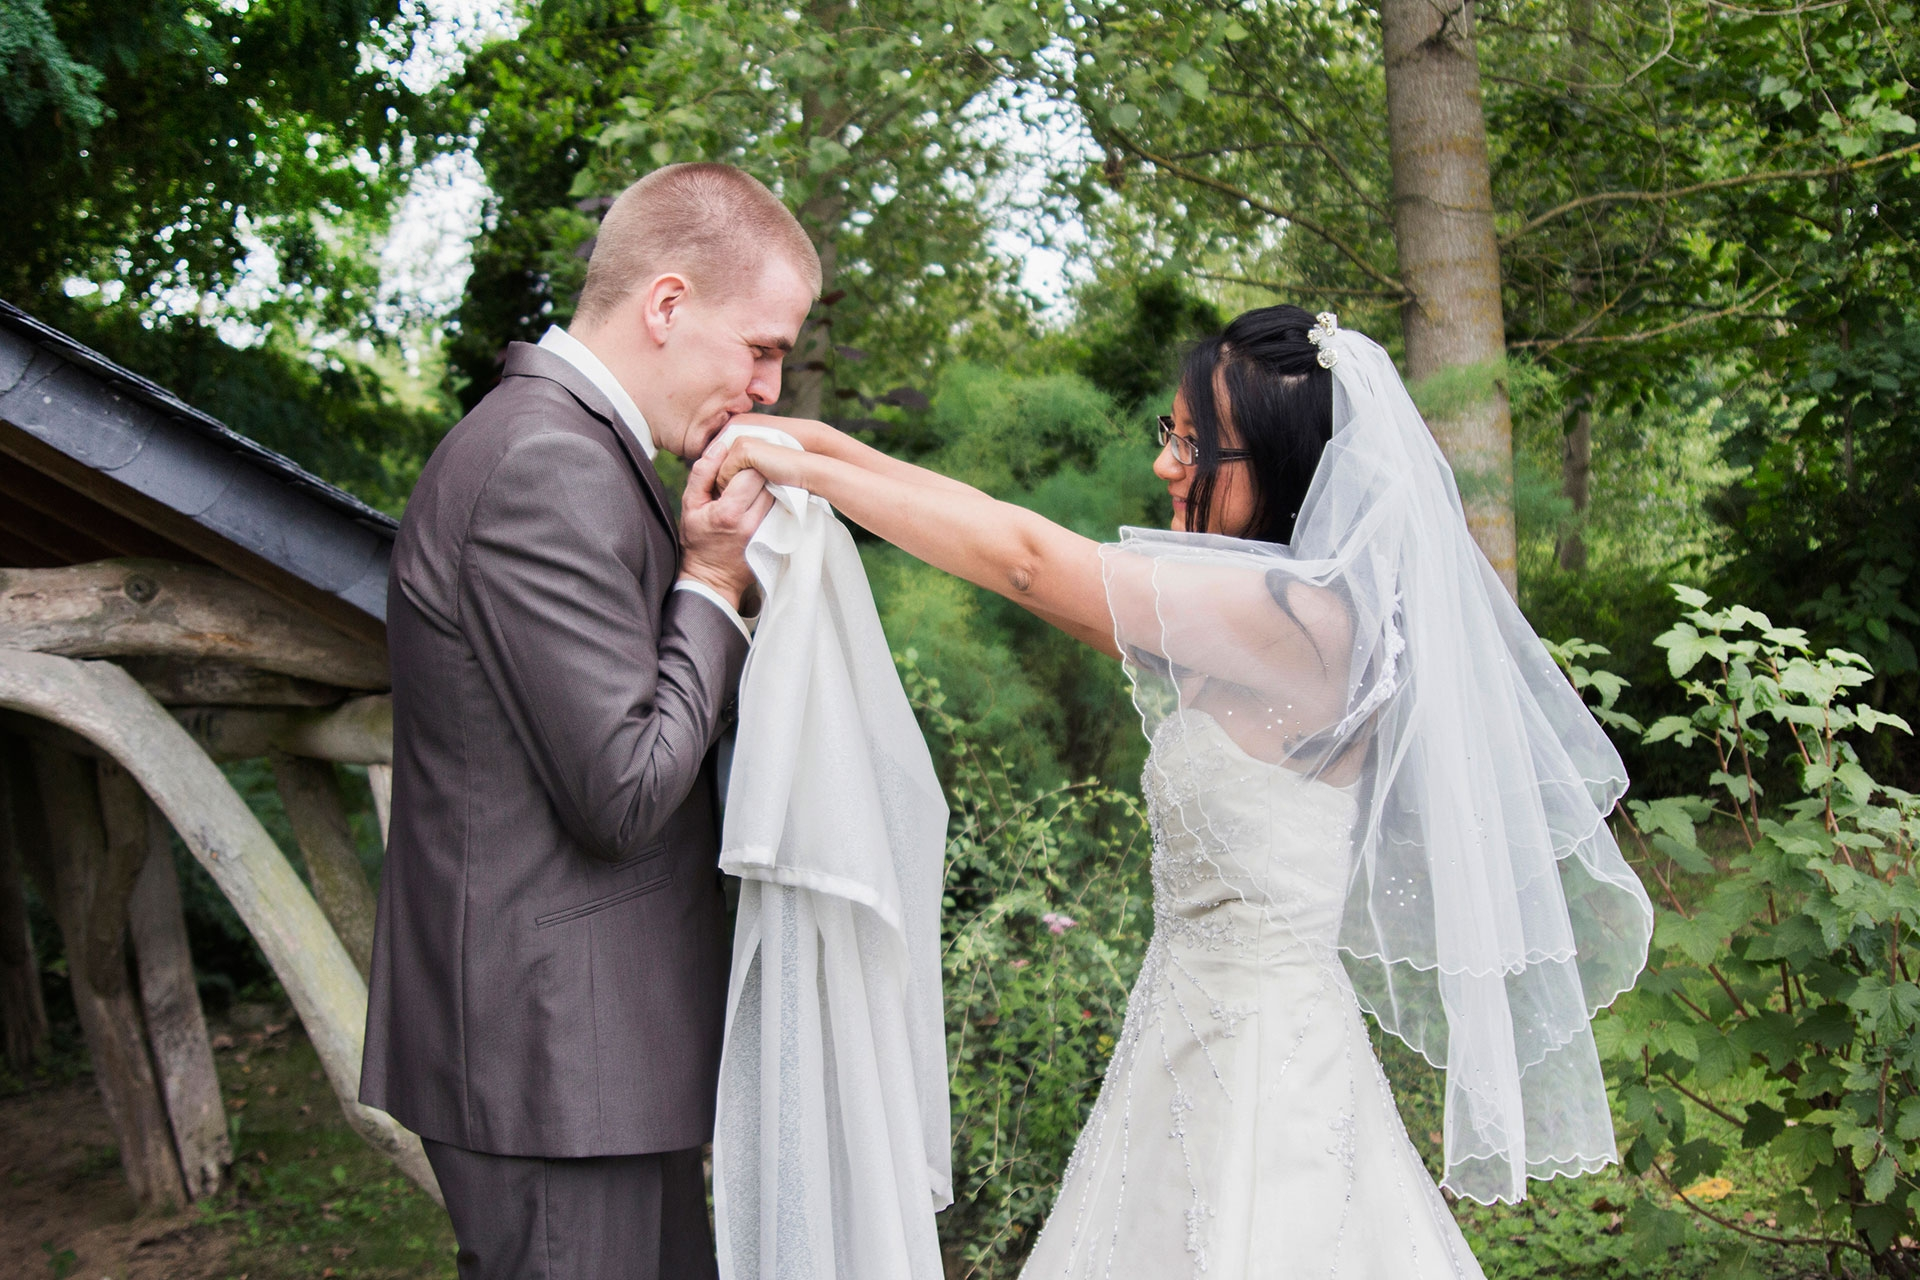 particuliers-mariages-oui-mayingcyril-13